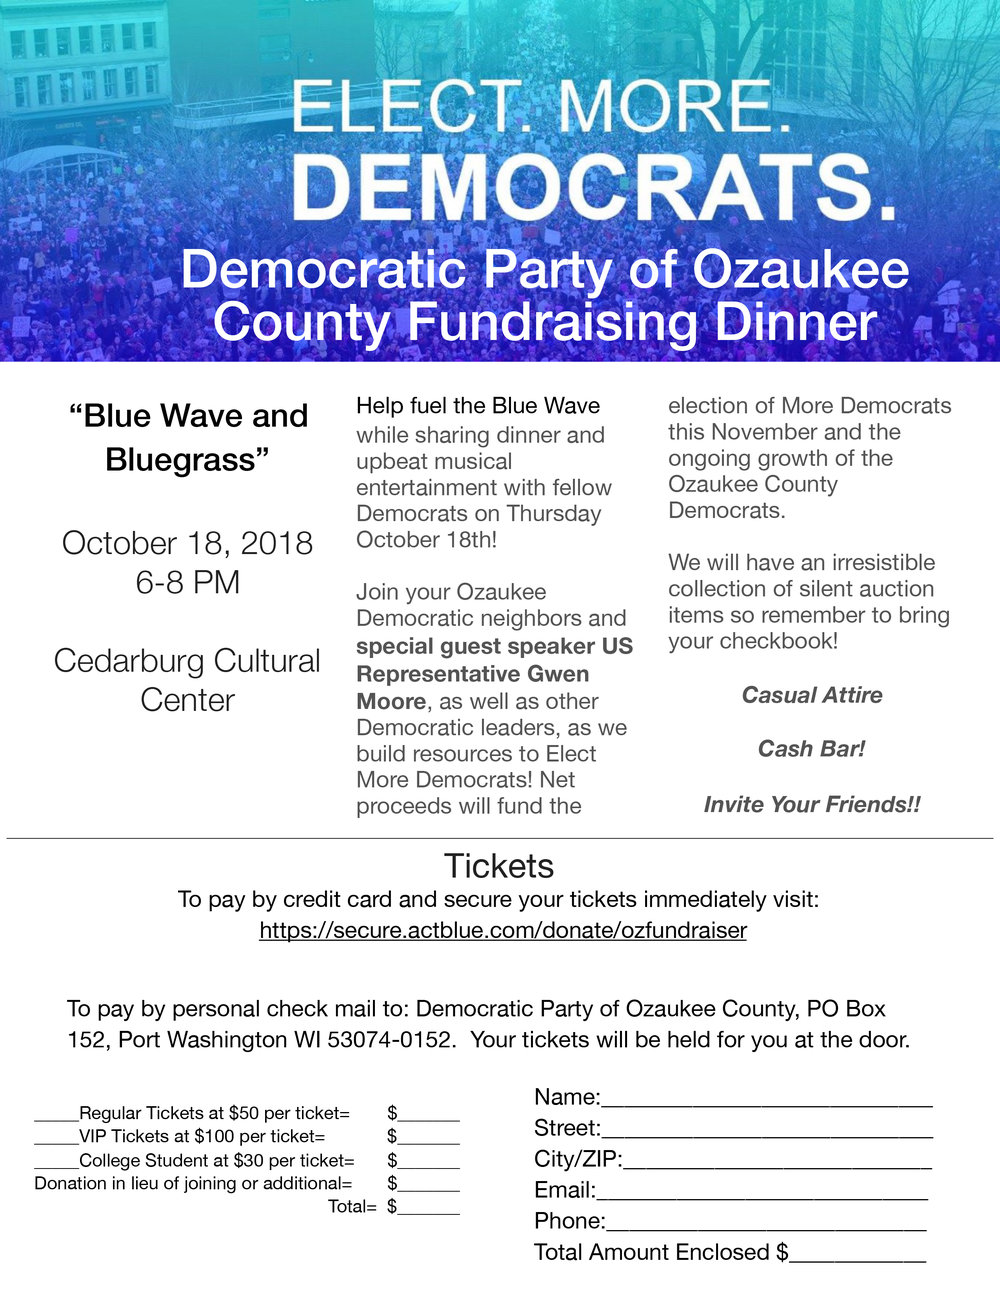 Ticket Form for Oz Dem Dinner.jpg